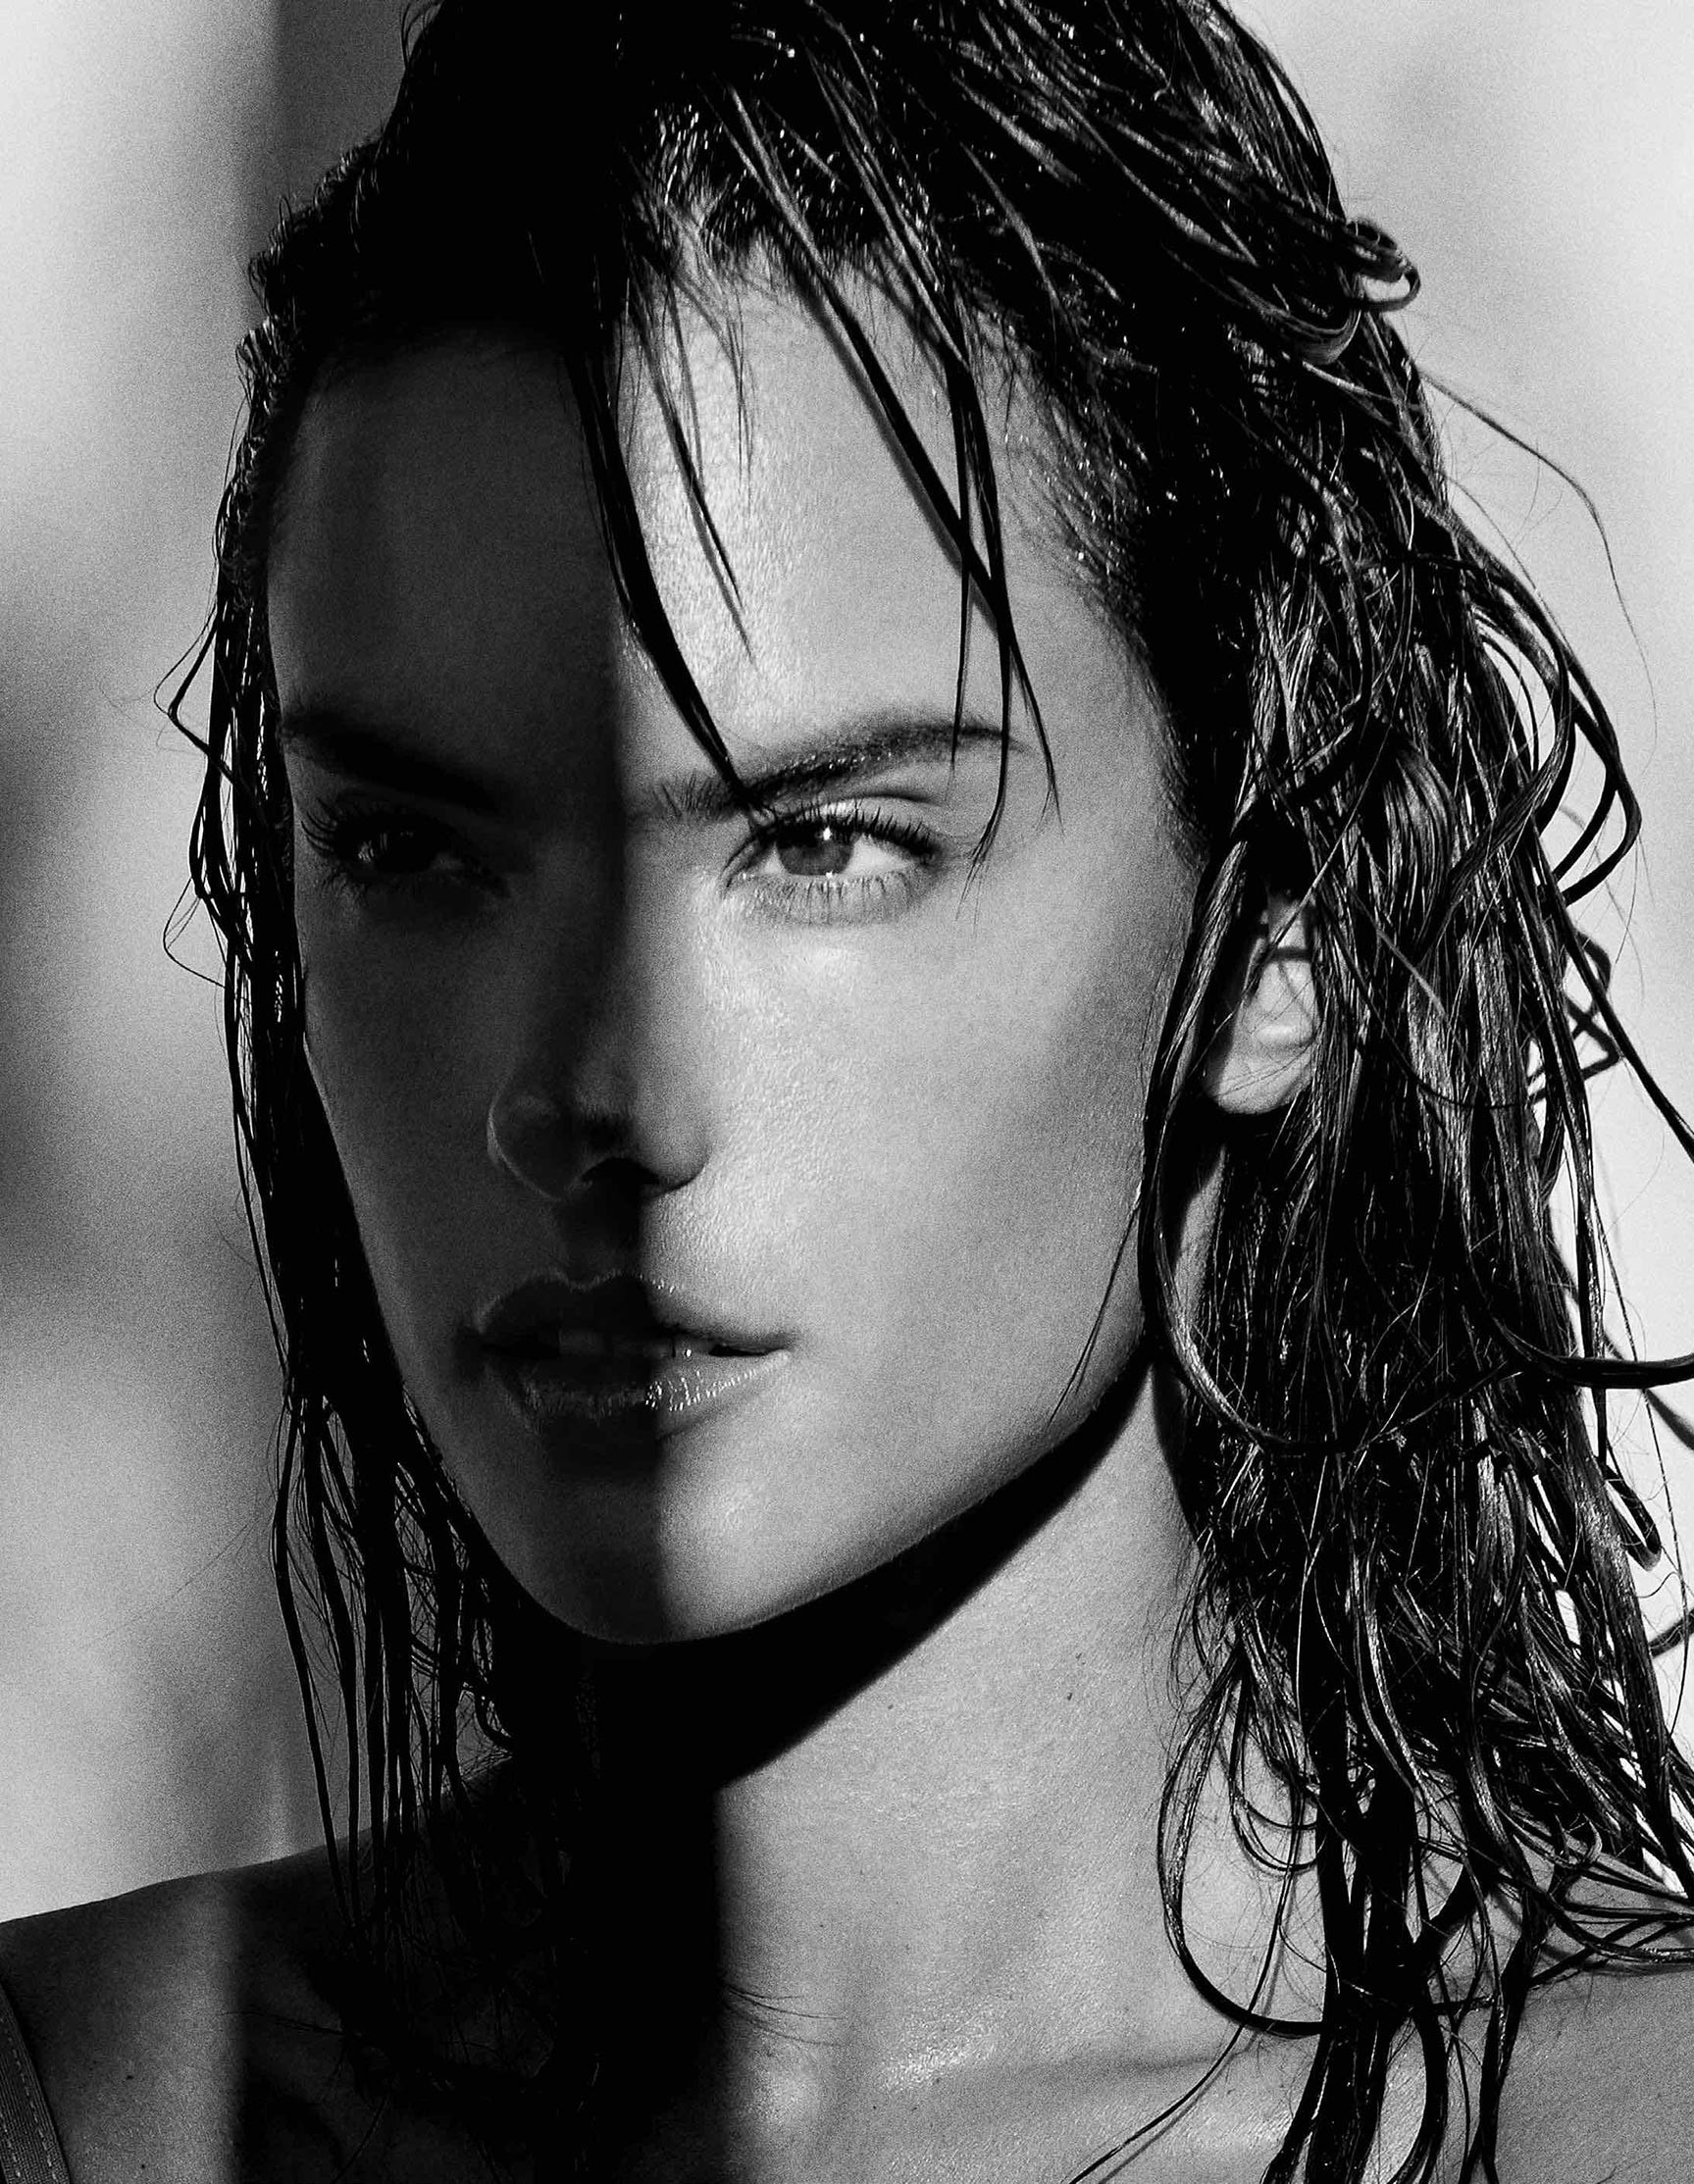 Alessandra Ambrosio by Yu Tsai for Narcisse Magazine Nude issue number 6, 2017